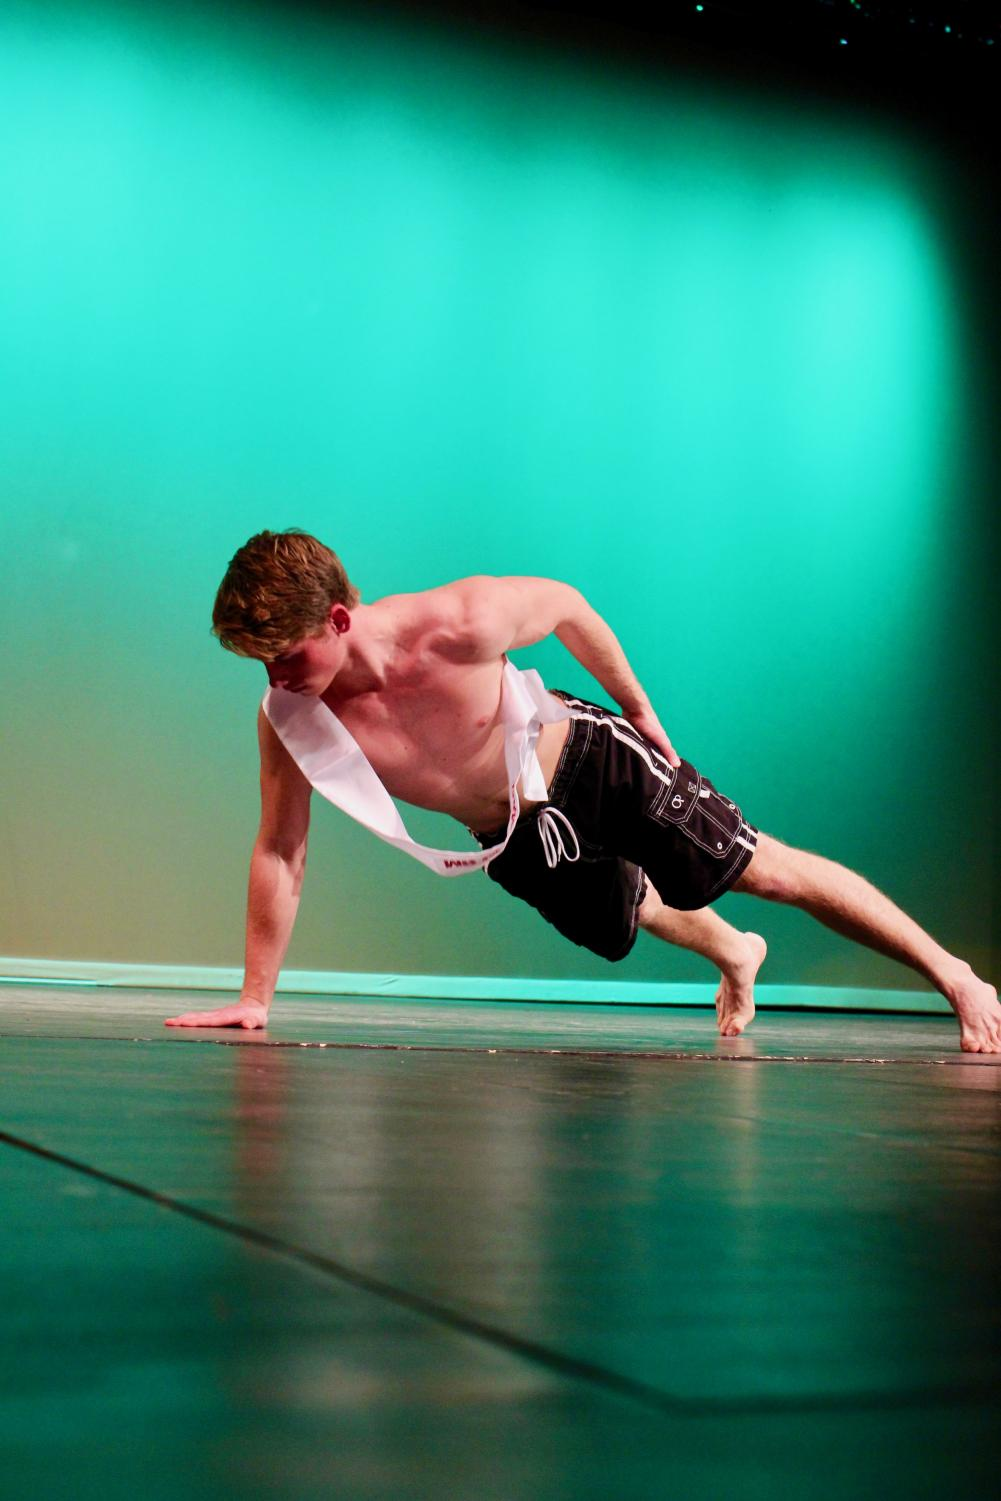 Jack+Krus%2C+senior%2C+wows+the+crowd+with+a+one-handed+push-up+during+the+swimwear+segment.+%22I%27ve+been+trying+to+do+as+much+as+I+can+senior+year%2C+so+I+did+Male+Poms+and+had+a+lot+of+fun+with+that+and+%5BMr.+KHS%5D%2C%22+Jack+Krus%2C+senior%2C+said.+%22A+lot+of+my+friends+were+doing+it+so+I+tried+out+to+see+if+it+would+be+fun+and+it+was.%22